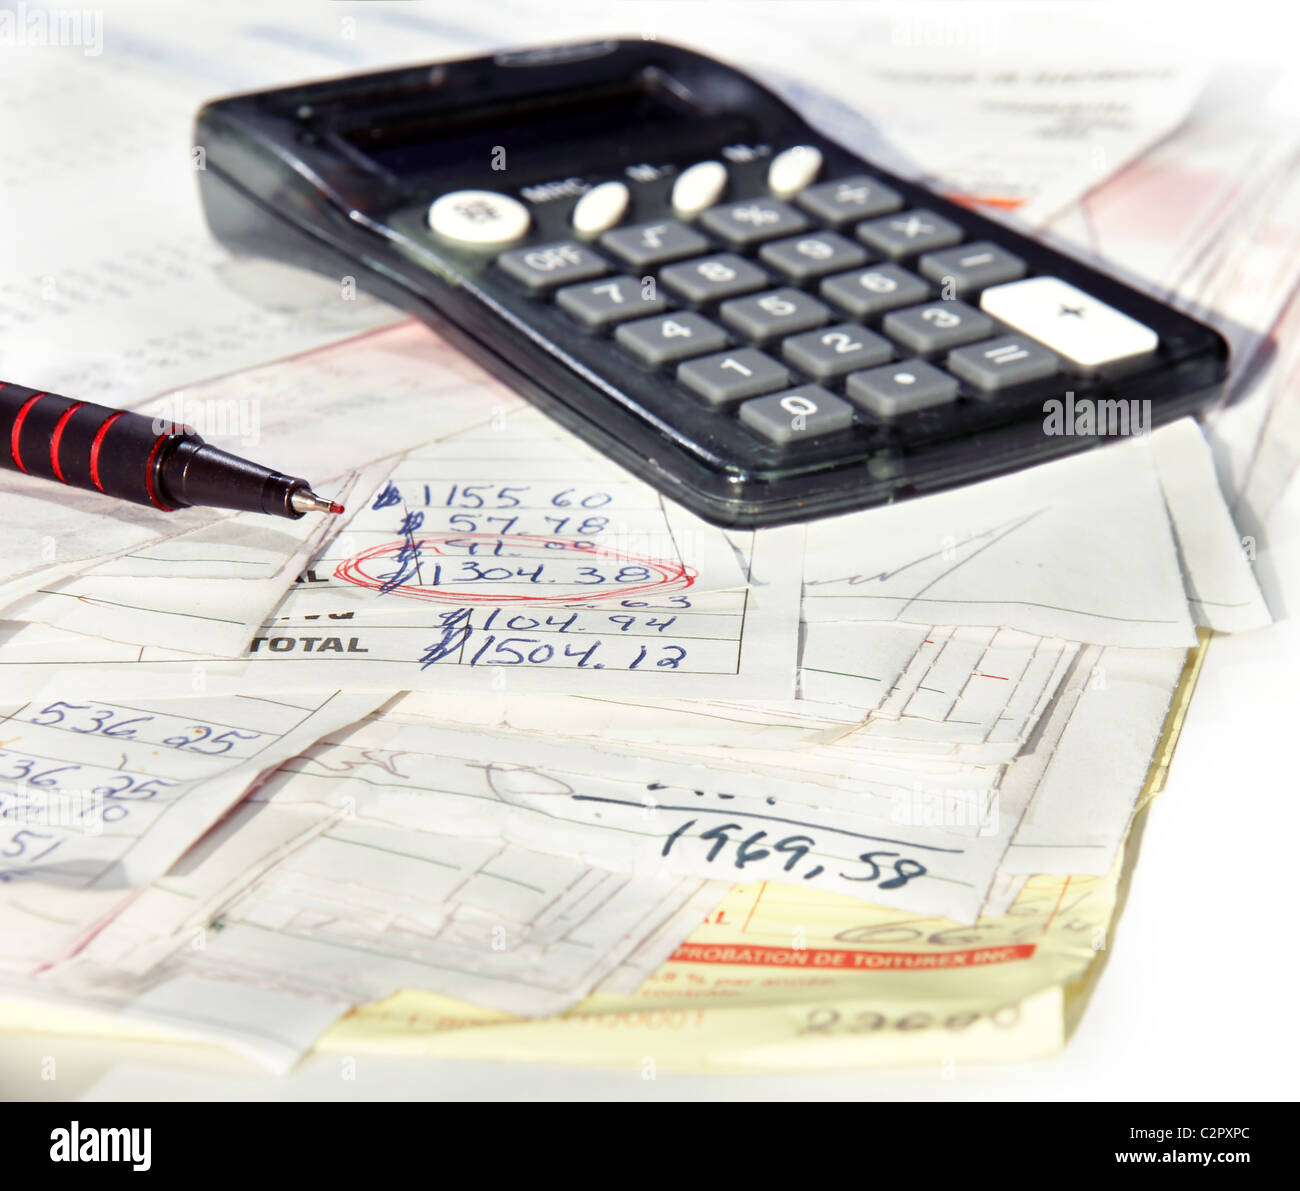 Adding the bills, calculator and real invoices with red tip pen and circled amount of reno costs. - Stock Image